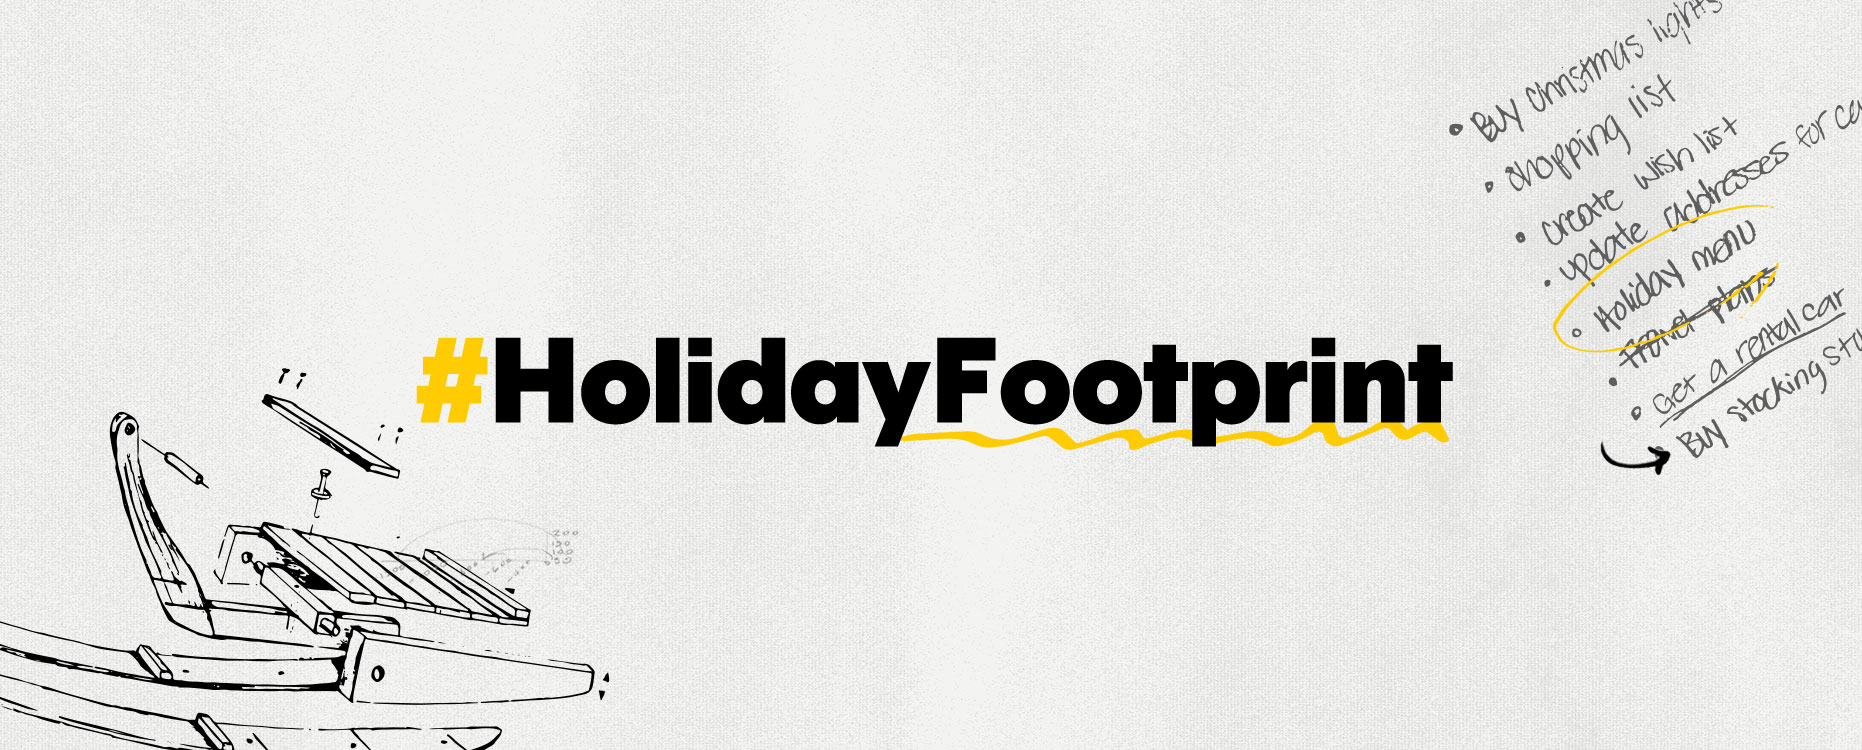 #HolidayFootprint